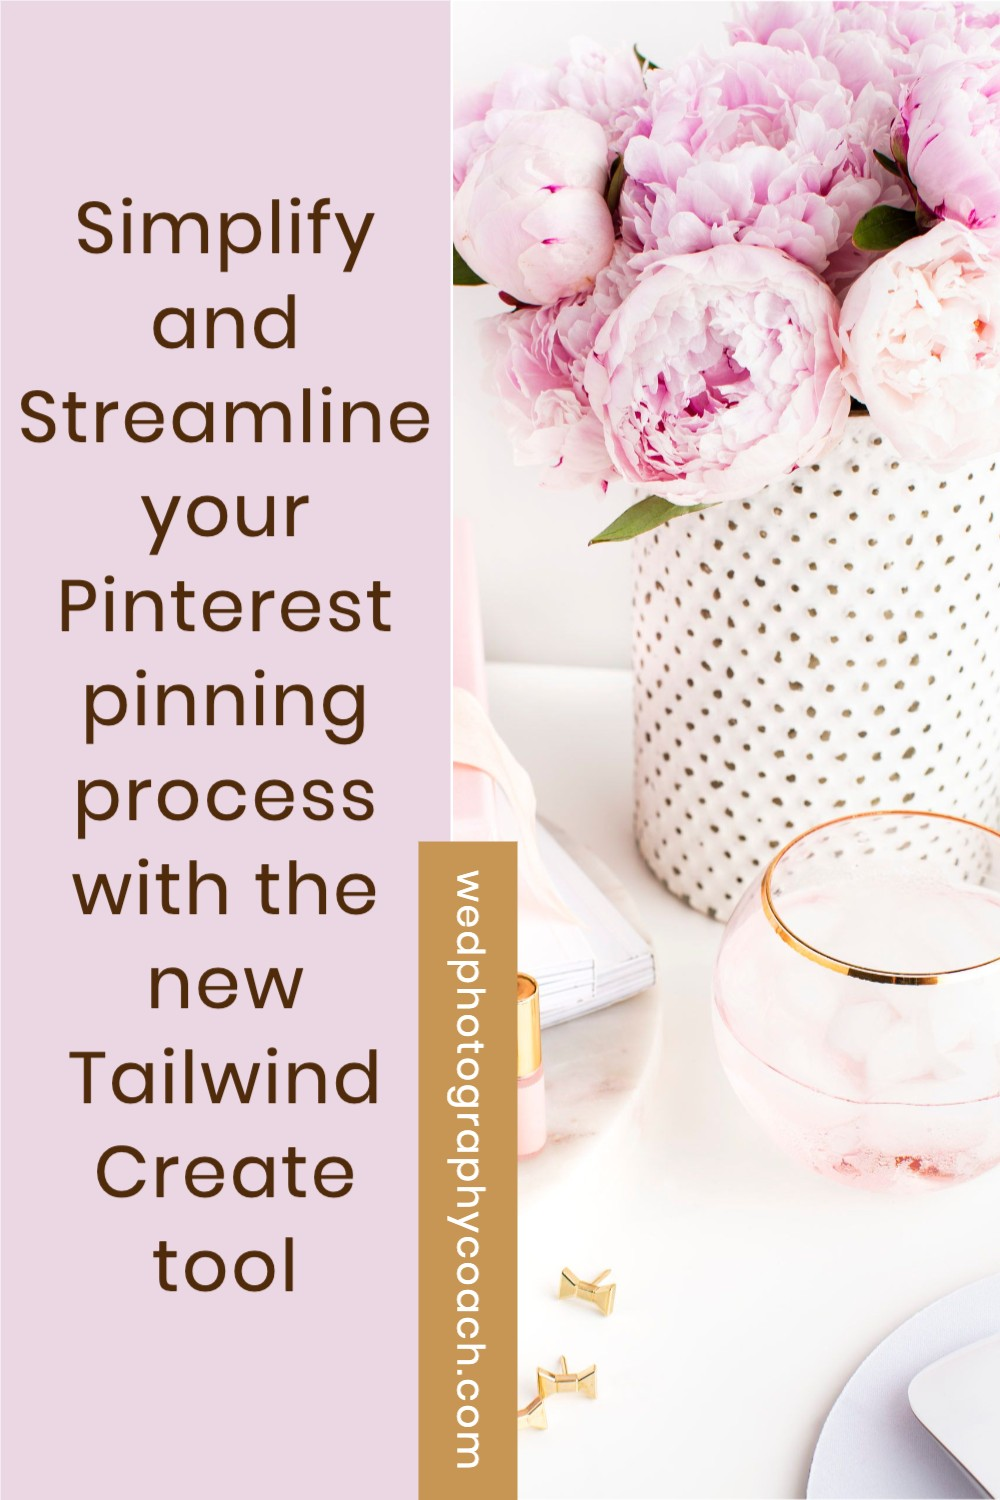 THE SECRET TO MAKE PINTEREST MARKETING EASY:  Simplify and Streamline your process with the new Tailwind Create.  This is how easy it is.